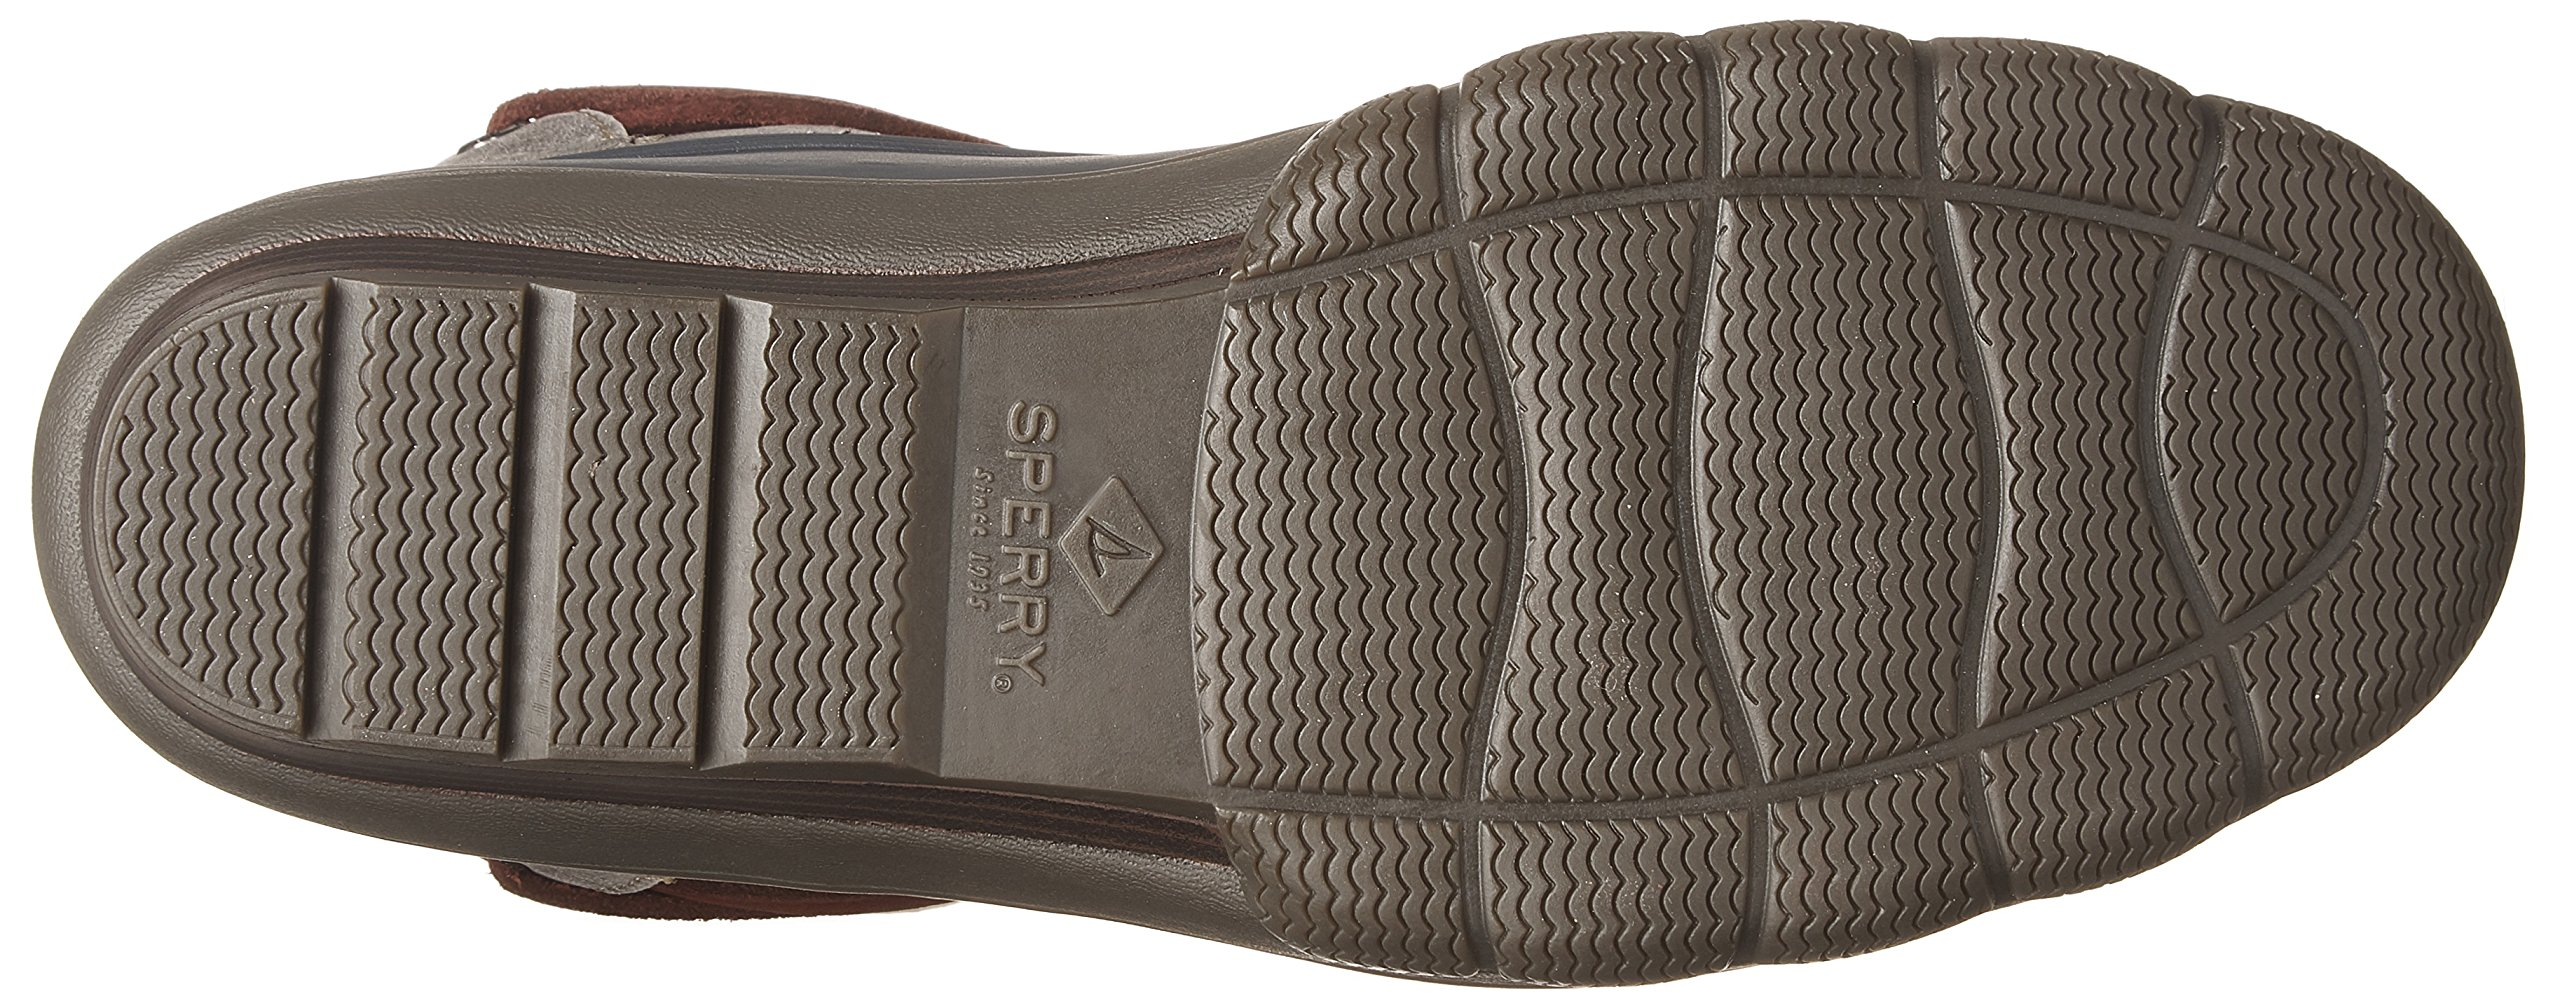 Sperry Top-Sider Women's Saltwater Wedge Tide Rain Boot, Grey, 8 Medium US by Sperry Top-Sider (Image #3)